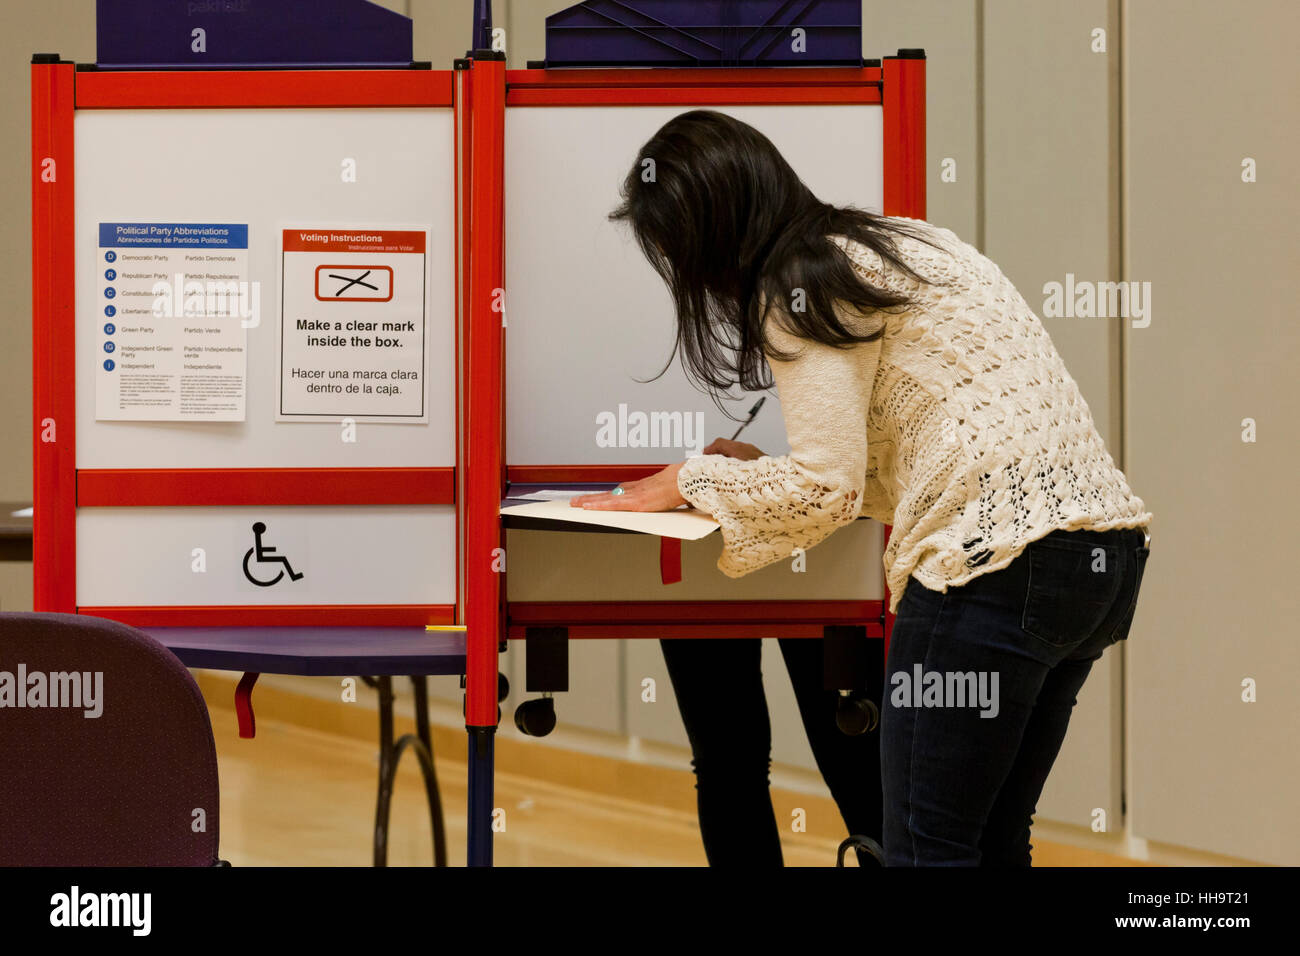 Female voter at voting booth during 2016 general elections - Arlington, Virginia USA - Stock Image